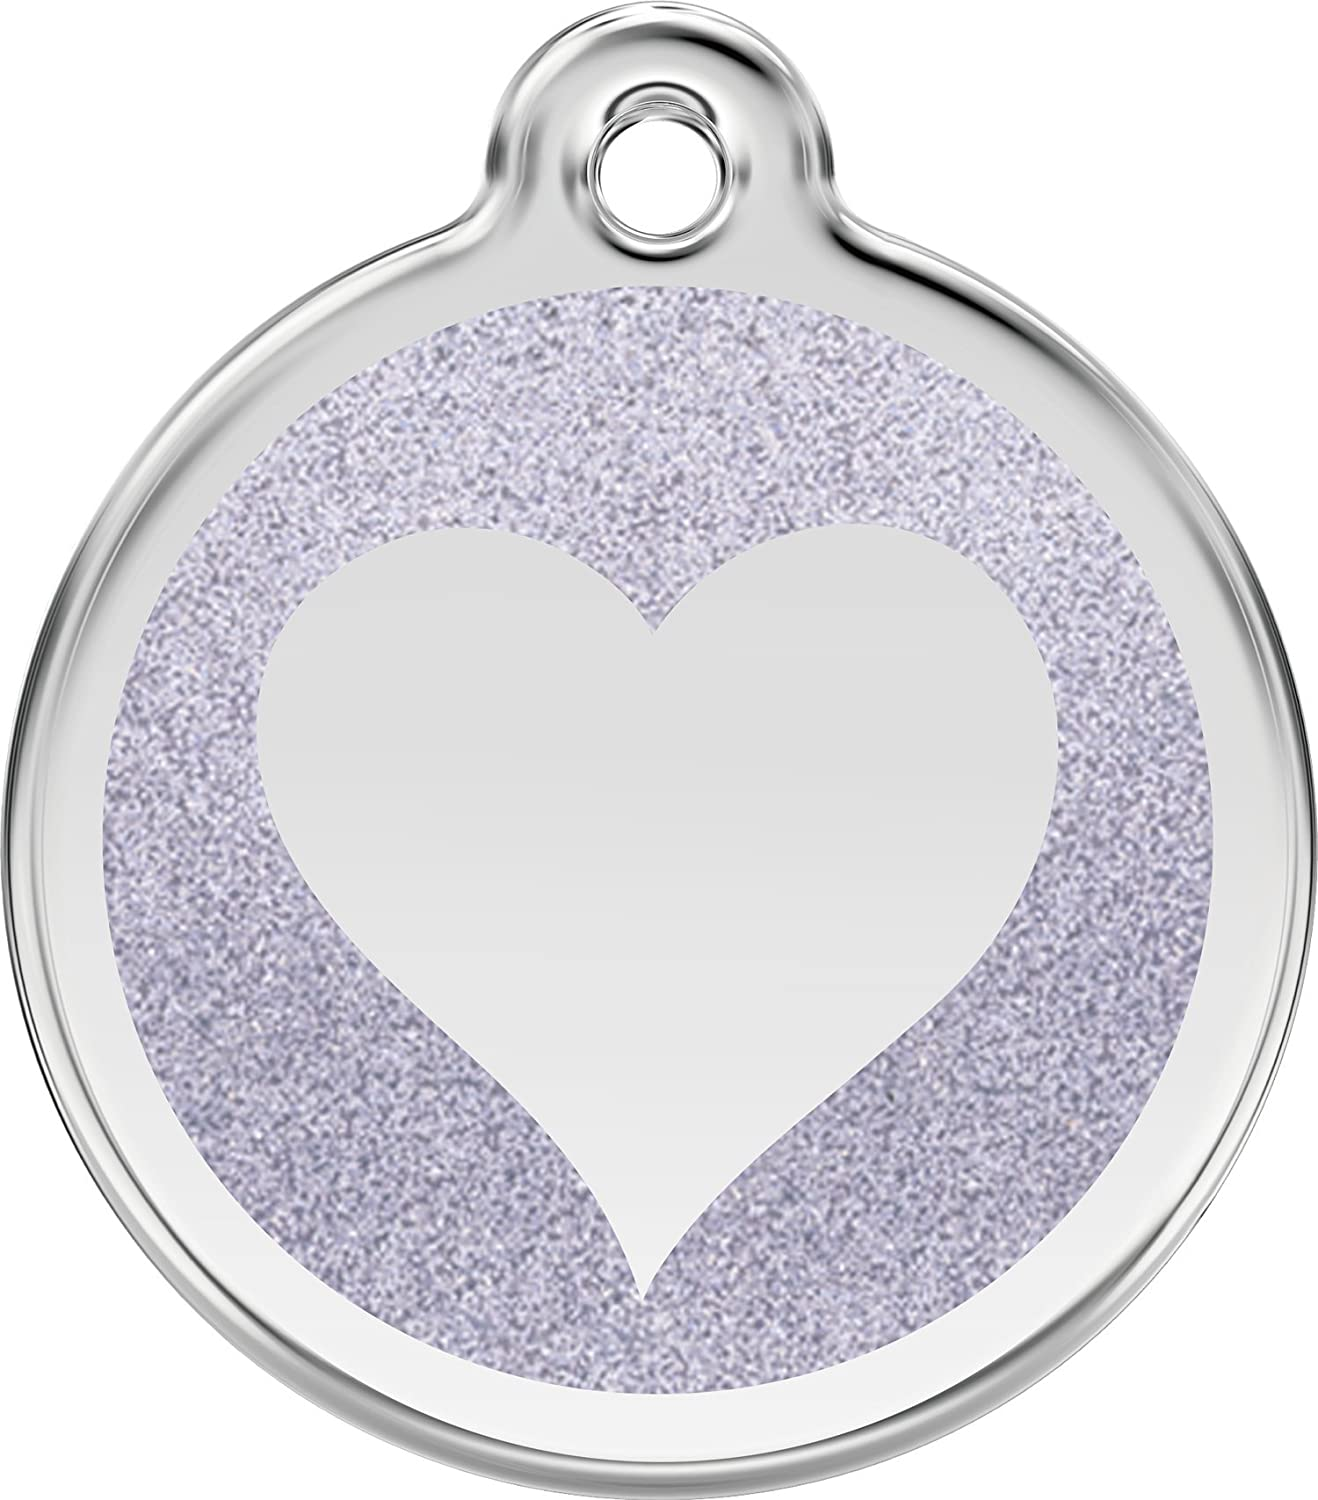 Red Dingo Stainless Steel & Glitter Enamel Heart Dog ID Tag (Silver, Large)